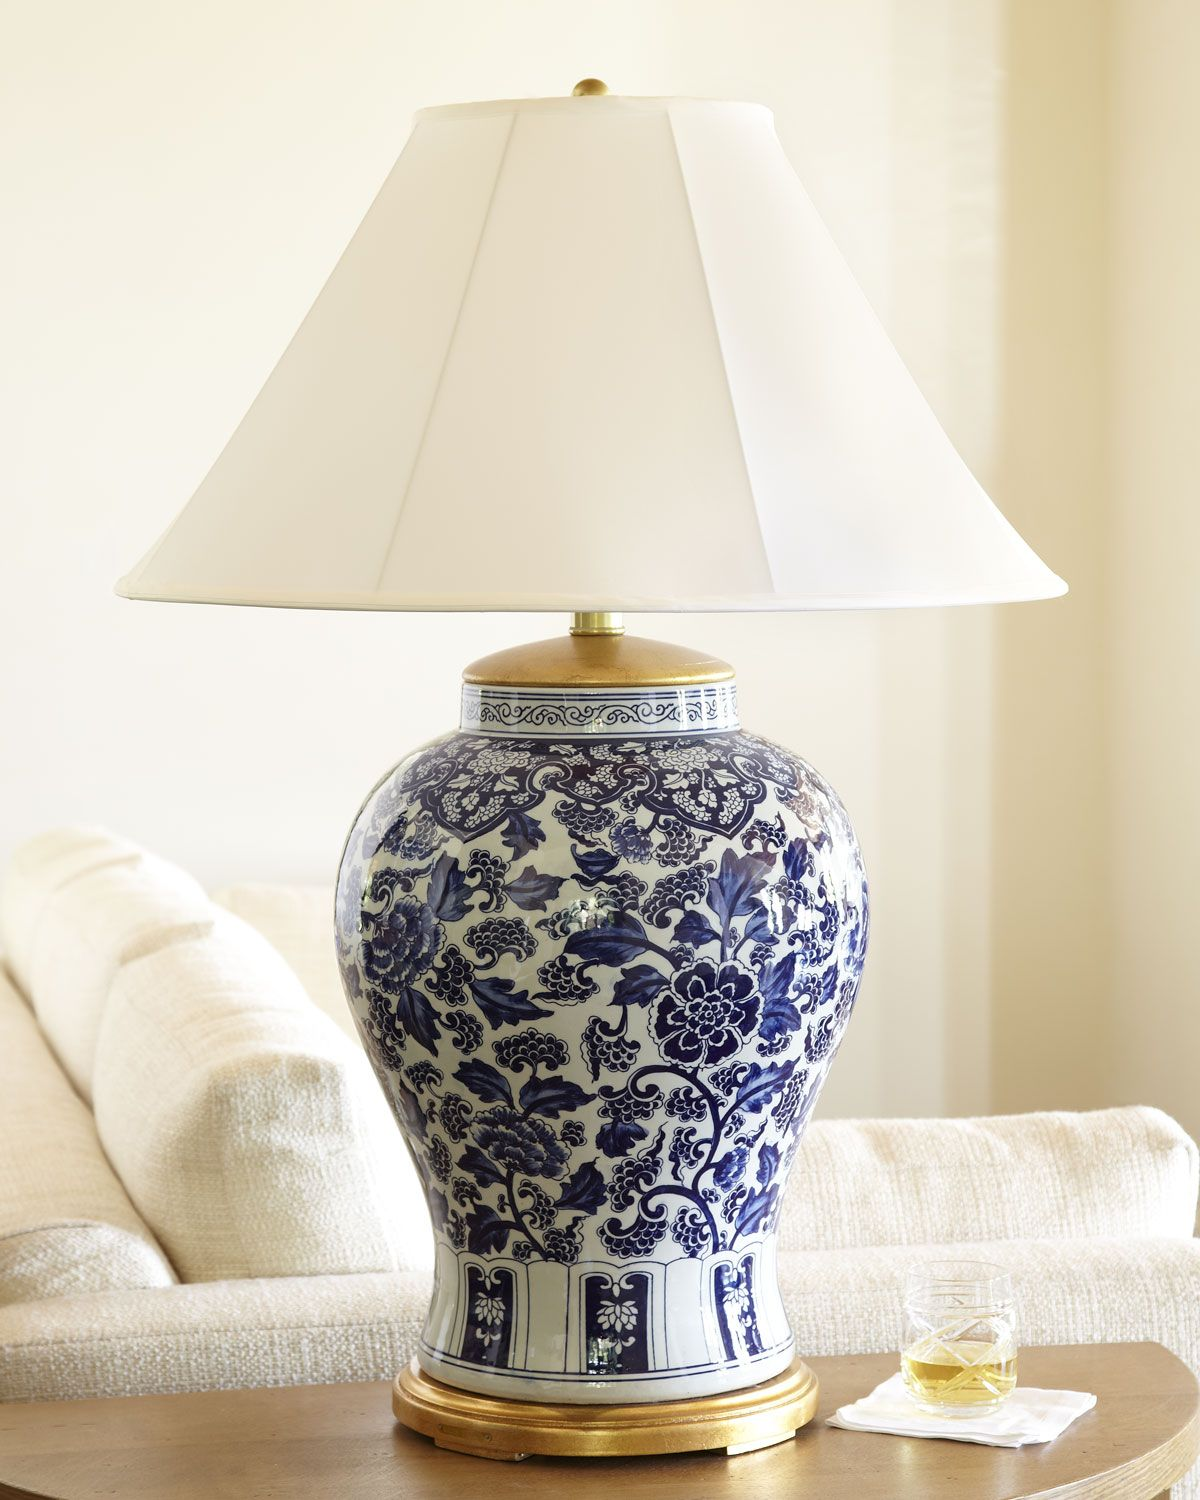 Ralph lauren ginger jar table lamp neiman marcus love my work ralph lauren ginger jar table lamp neiman marcus geotapseo Gallery